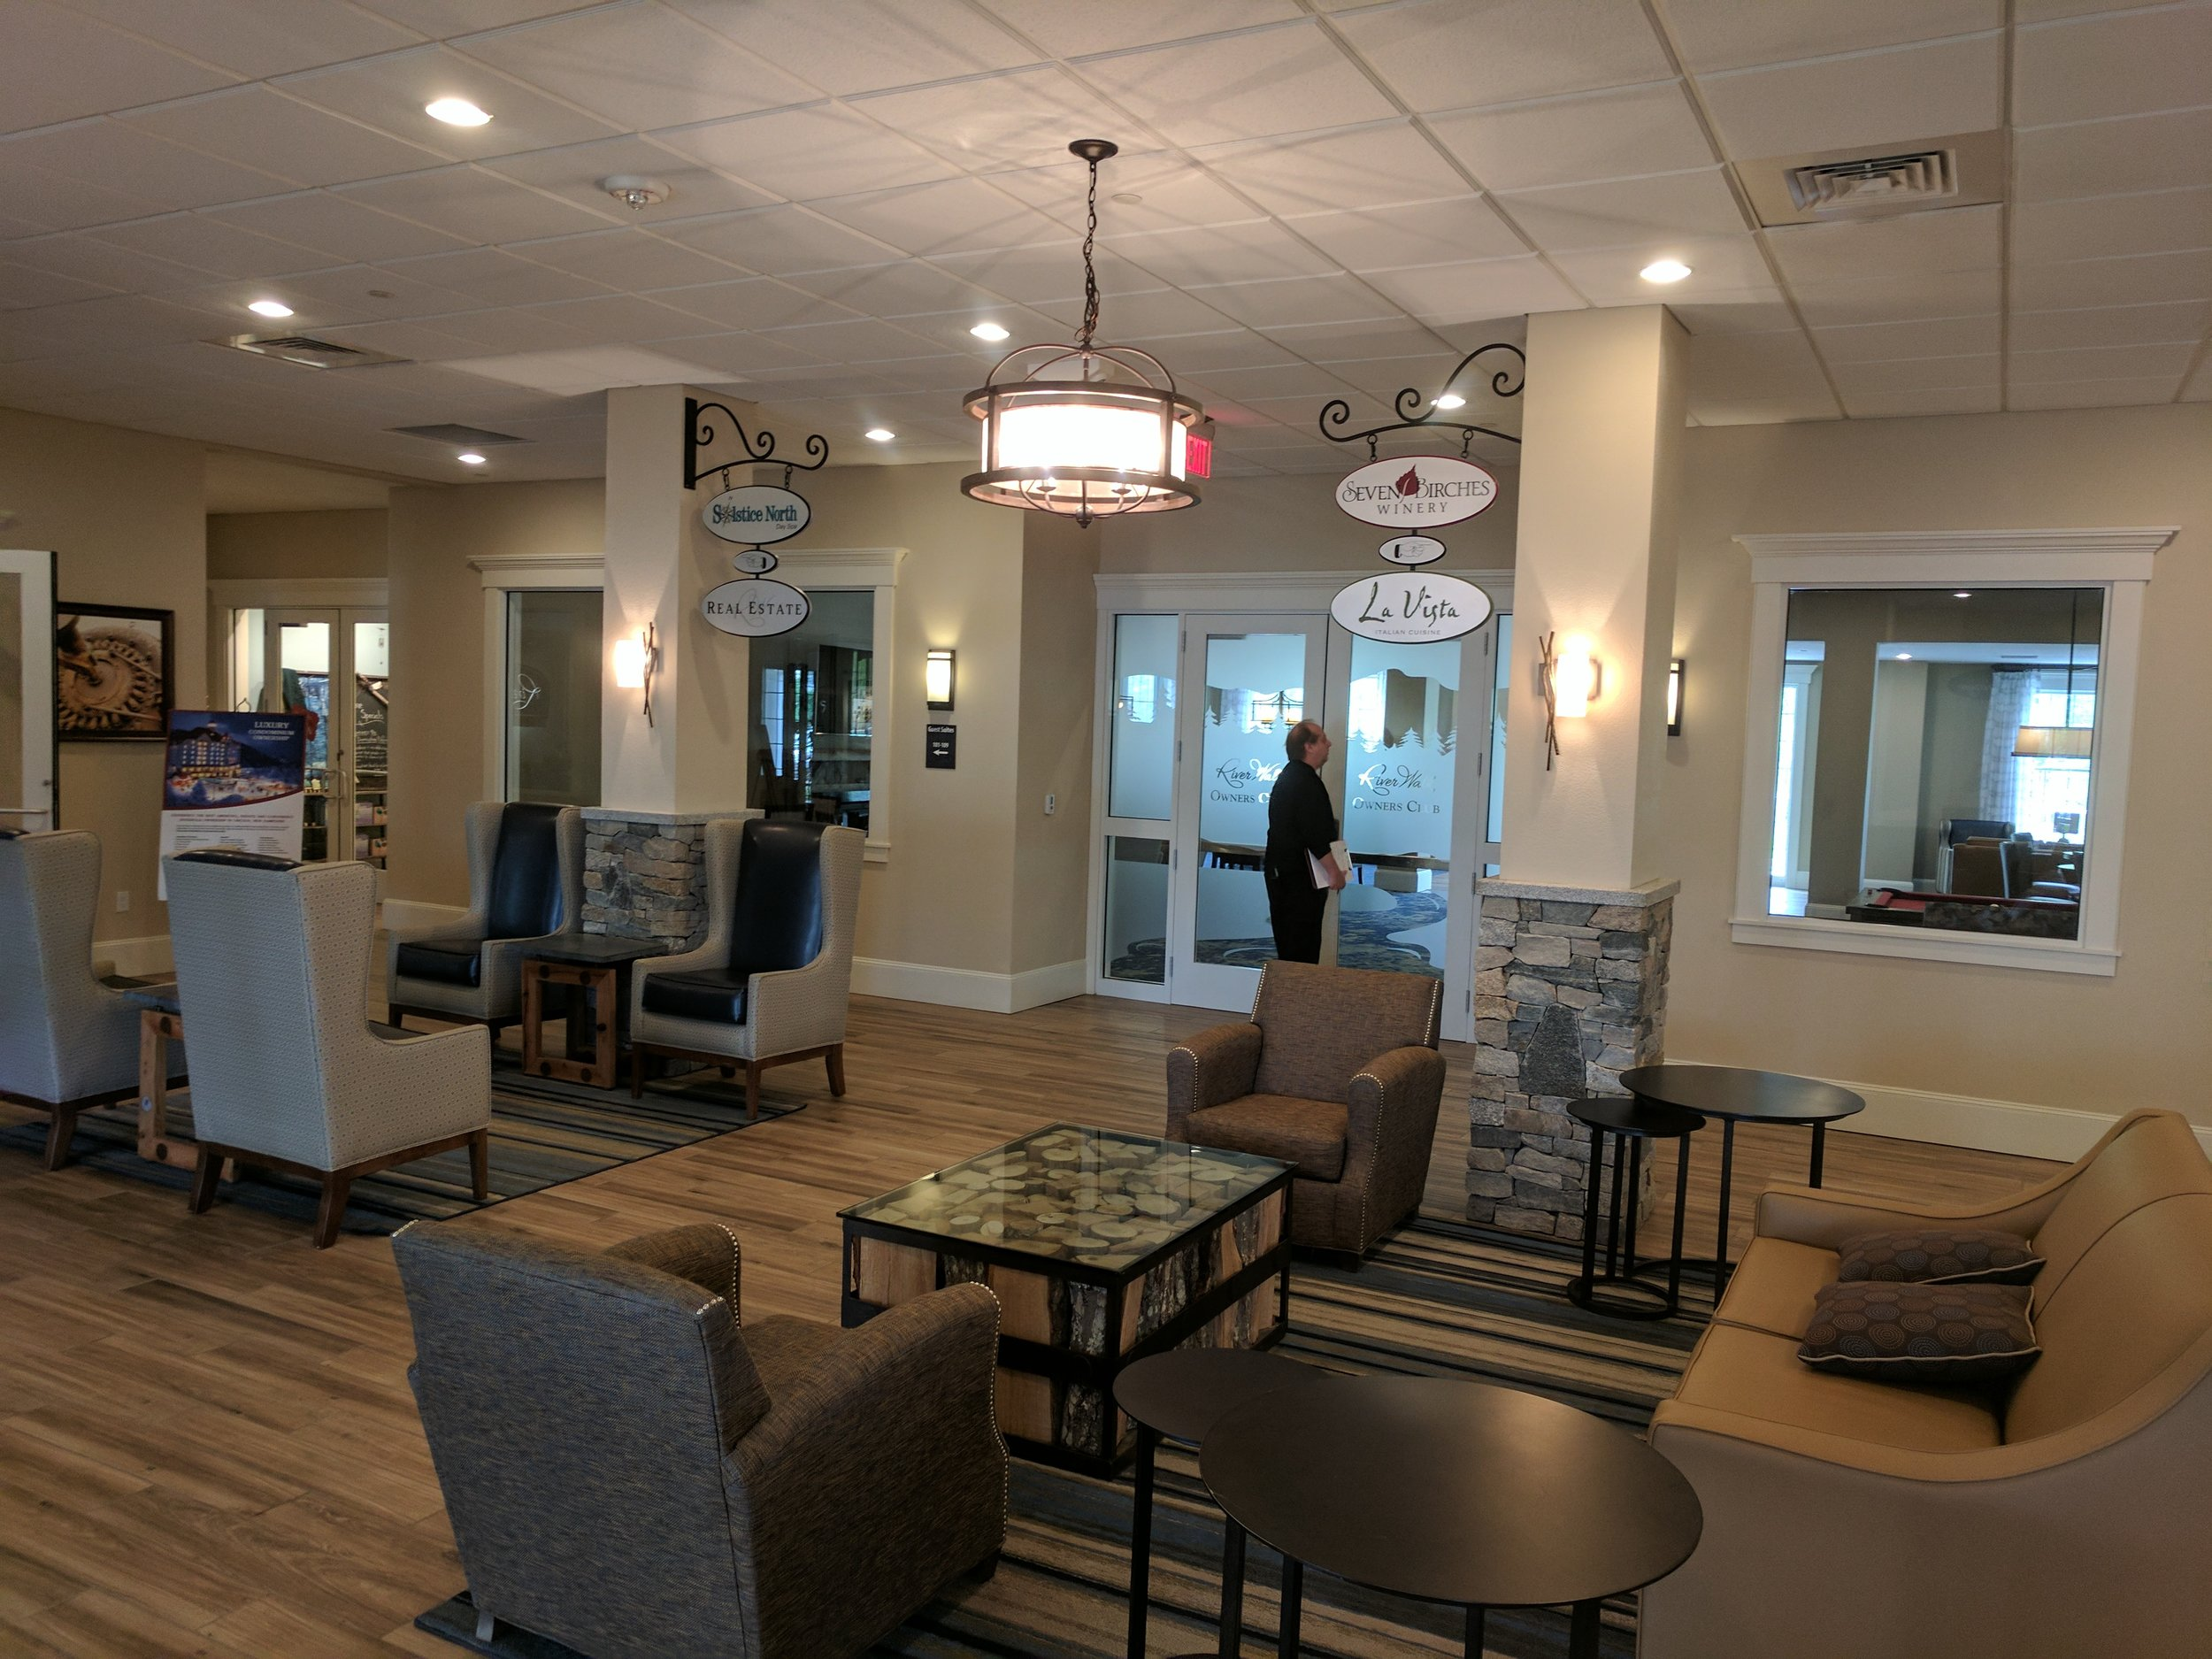 The lobby, which has access to the resort's on-site winery, restaurant, bar, and real estate company.